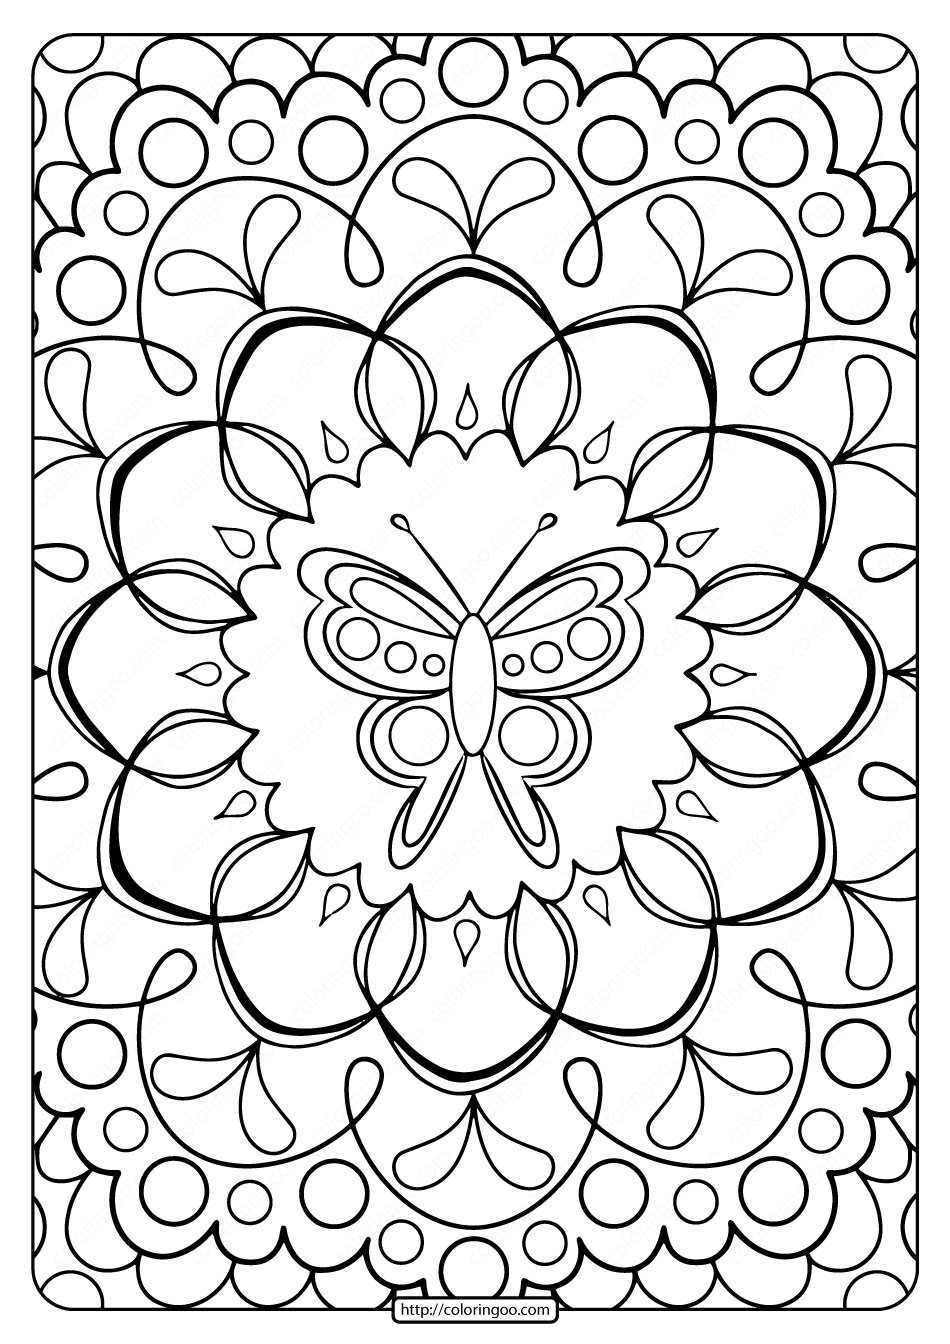 coloring images free printable butterfly adult coloring pages images coloring